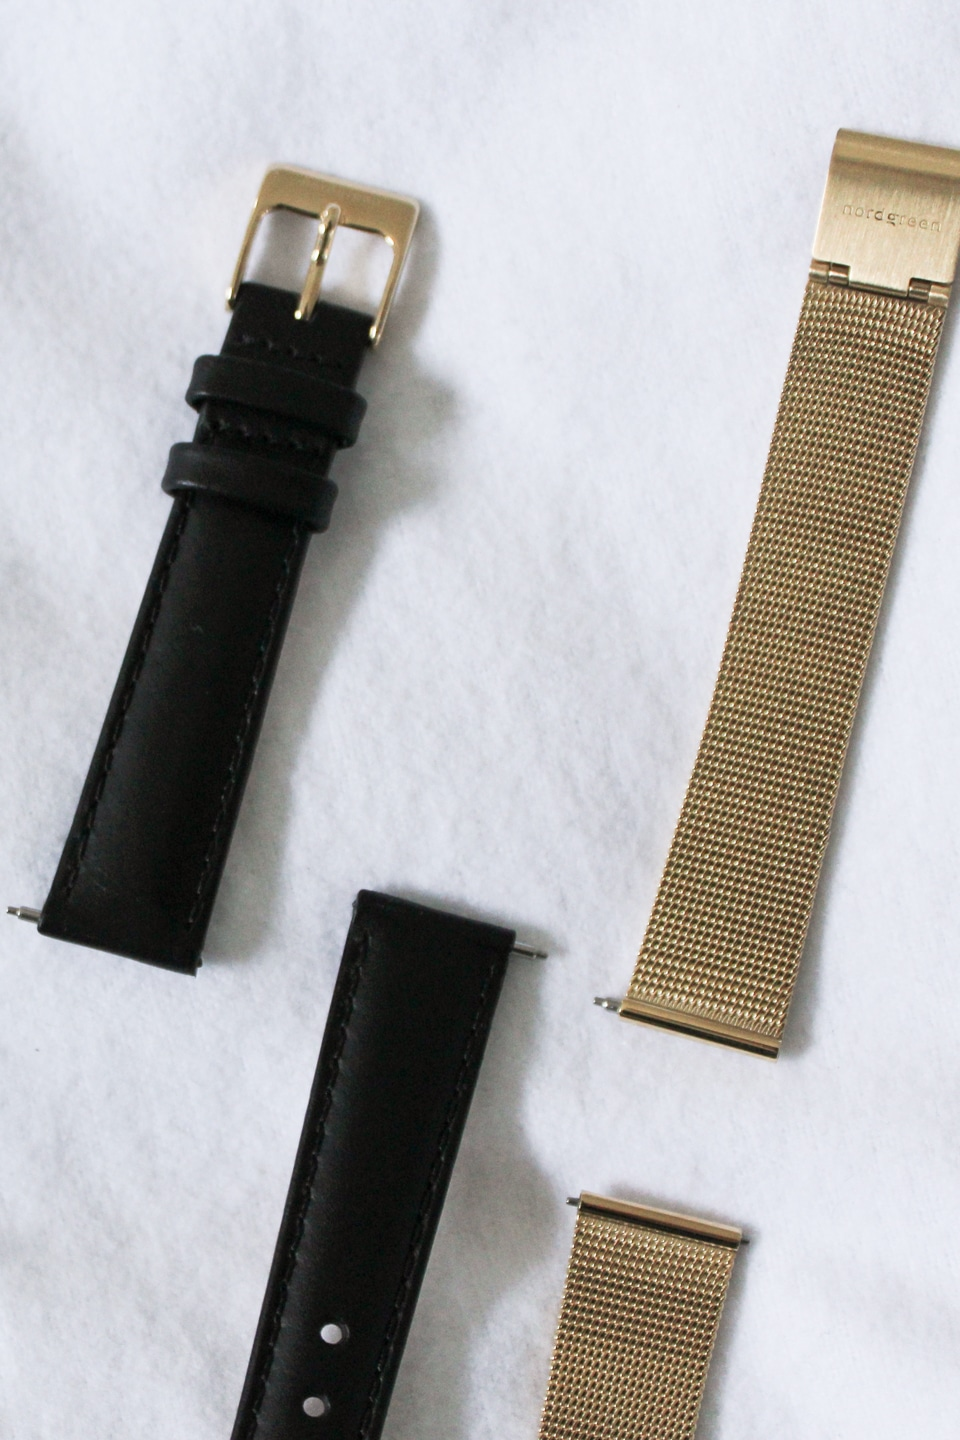 Black and gold Nordgreen watch straps